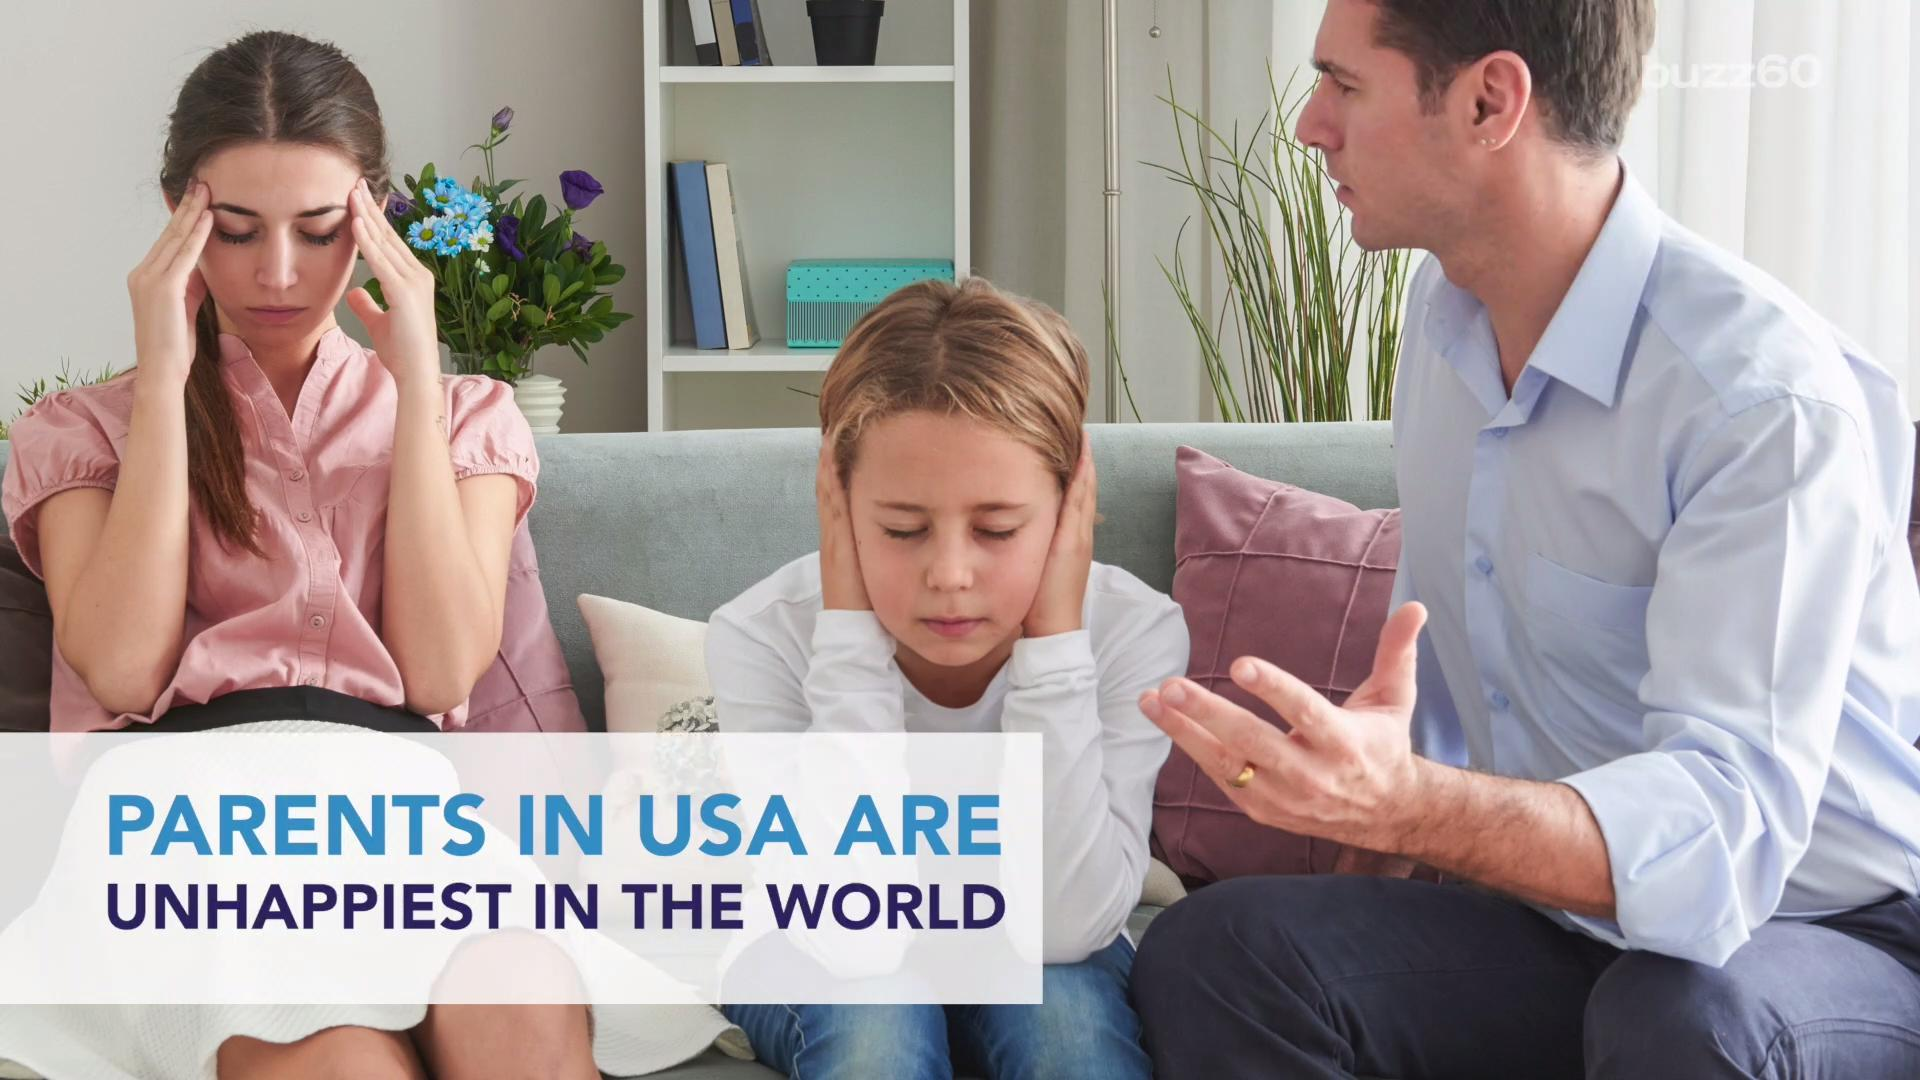 Parents in U.S. are Unhappiest in the World